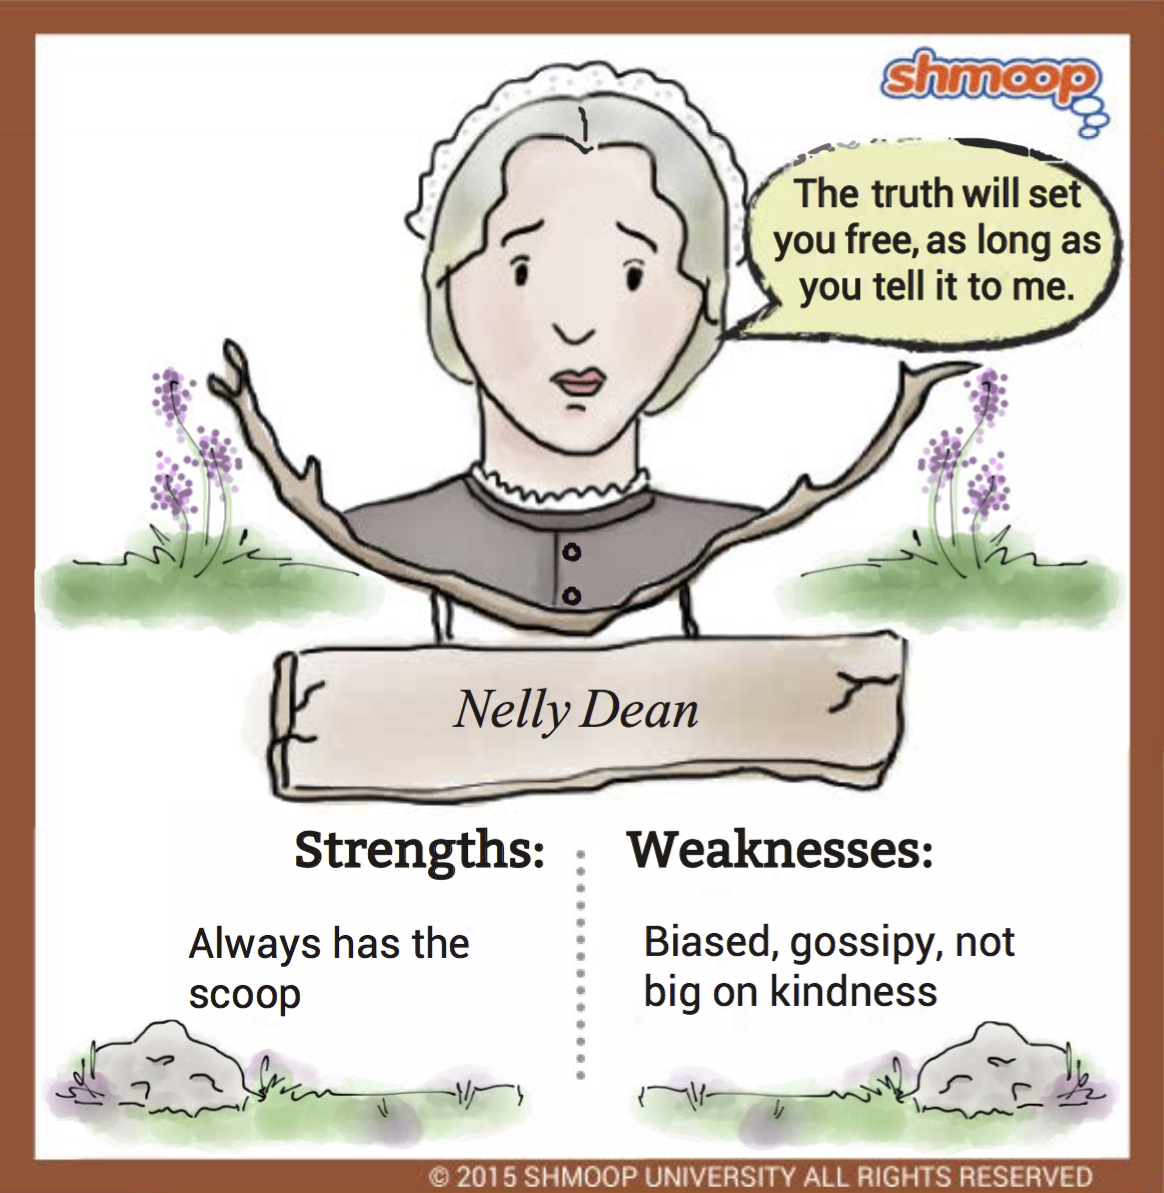 wuthering heights questions and answers Start studying wuthering heights study questions and answers learn vocabulary, terms, and more with flashcards, games, and other study tools.